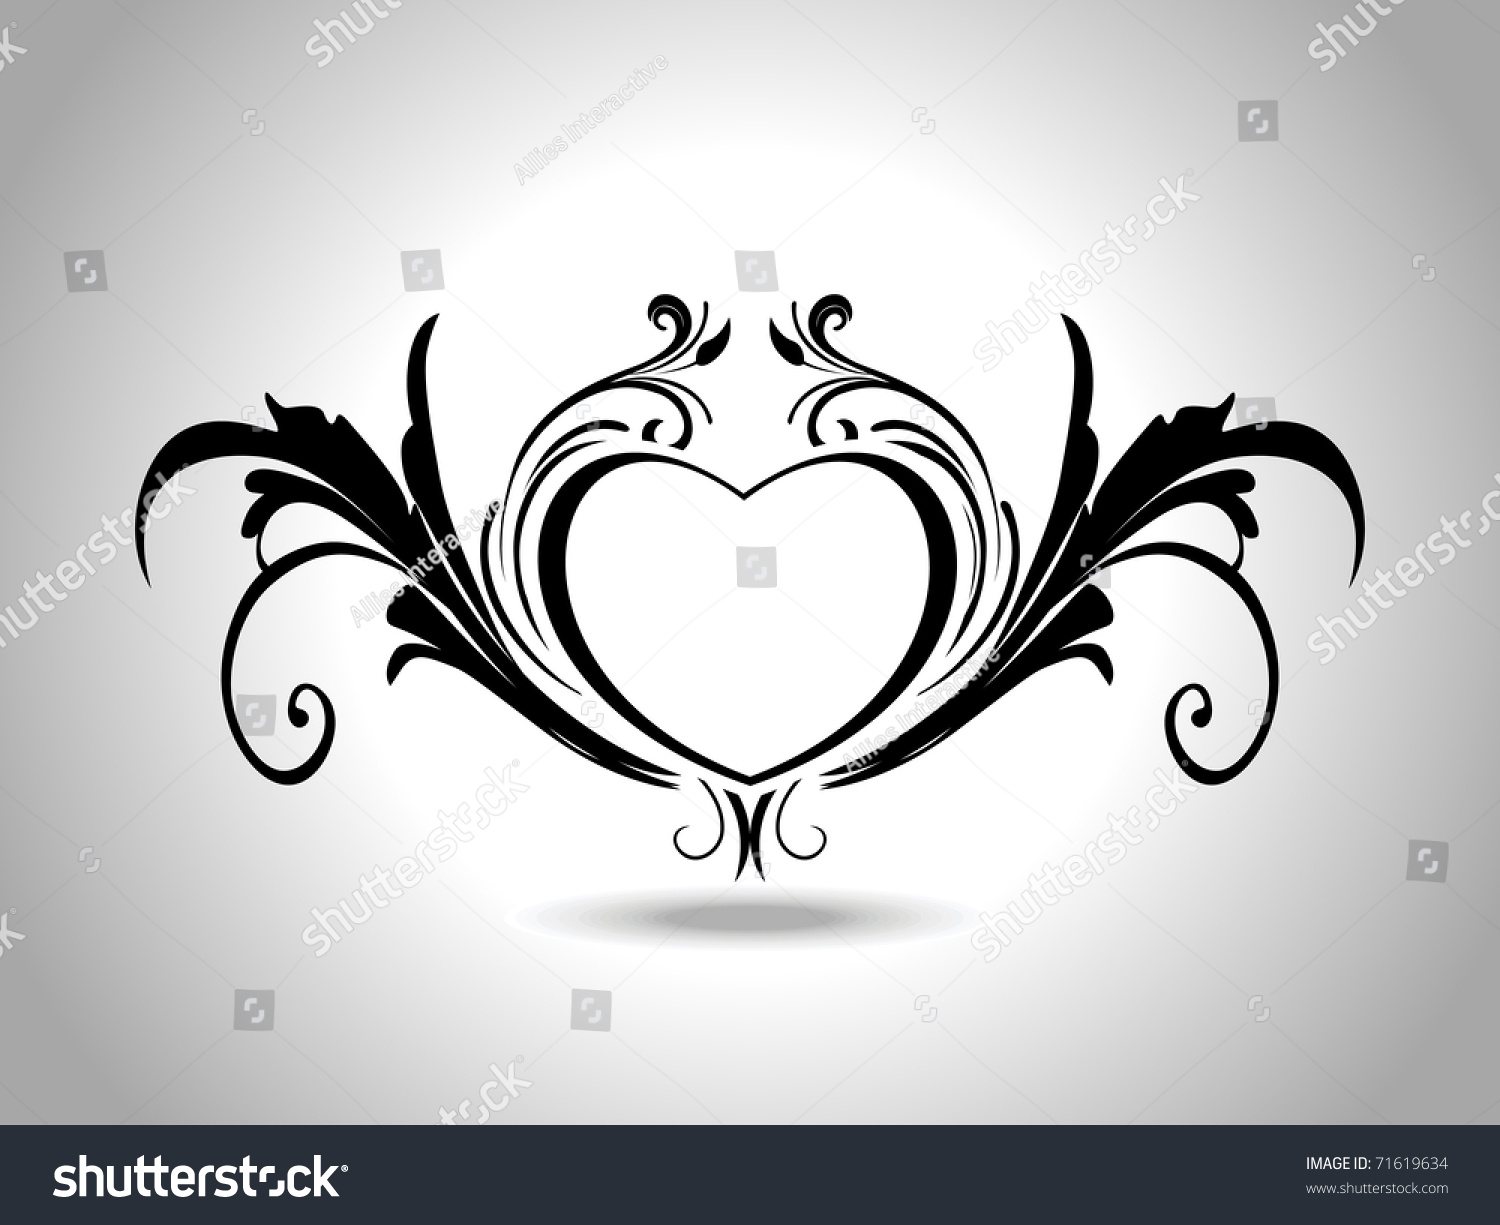 abstract grey background isolated black creative stock vector 71619634 shutterstock. Black Bedroom Furniture Sets. Home Design Ideas